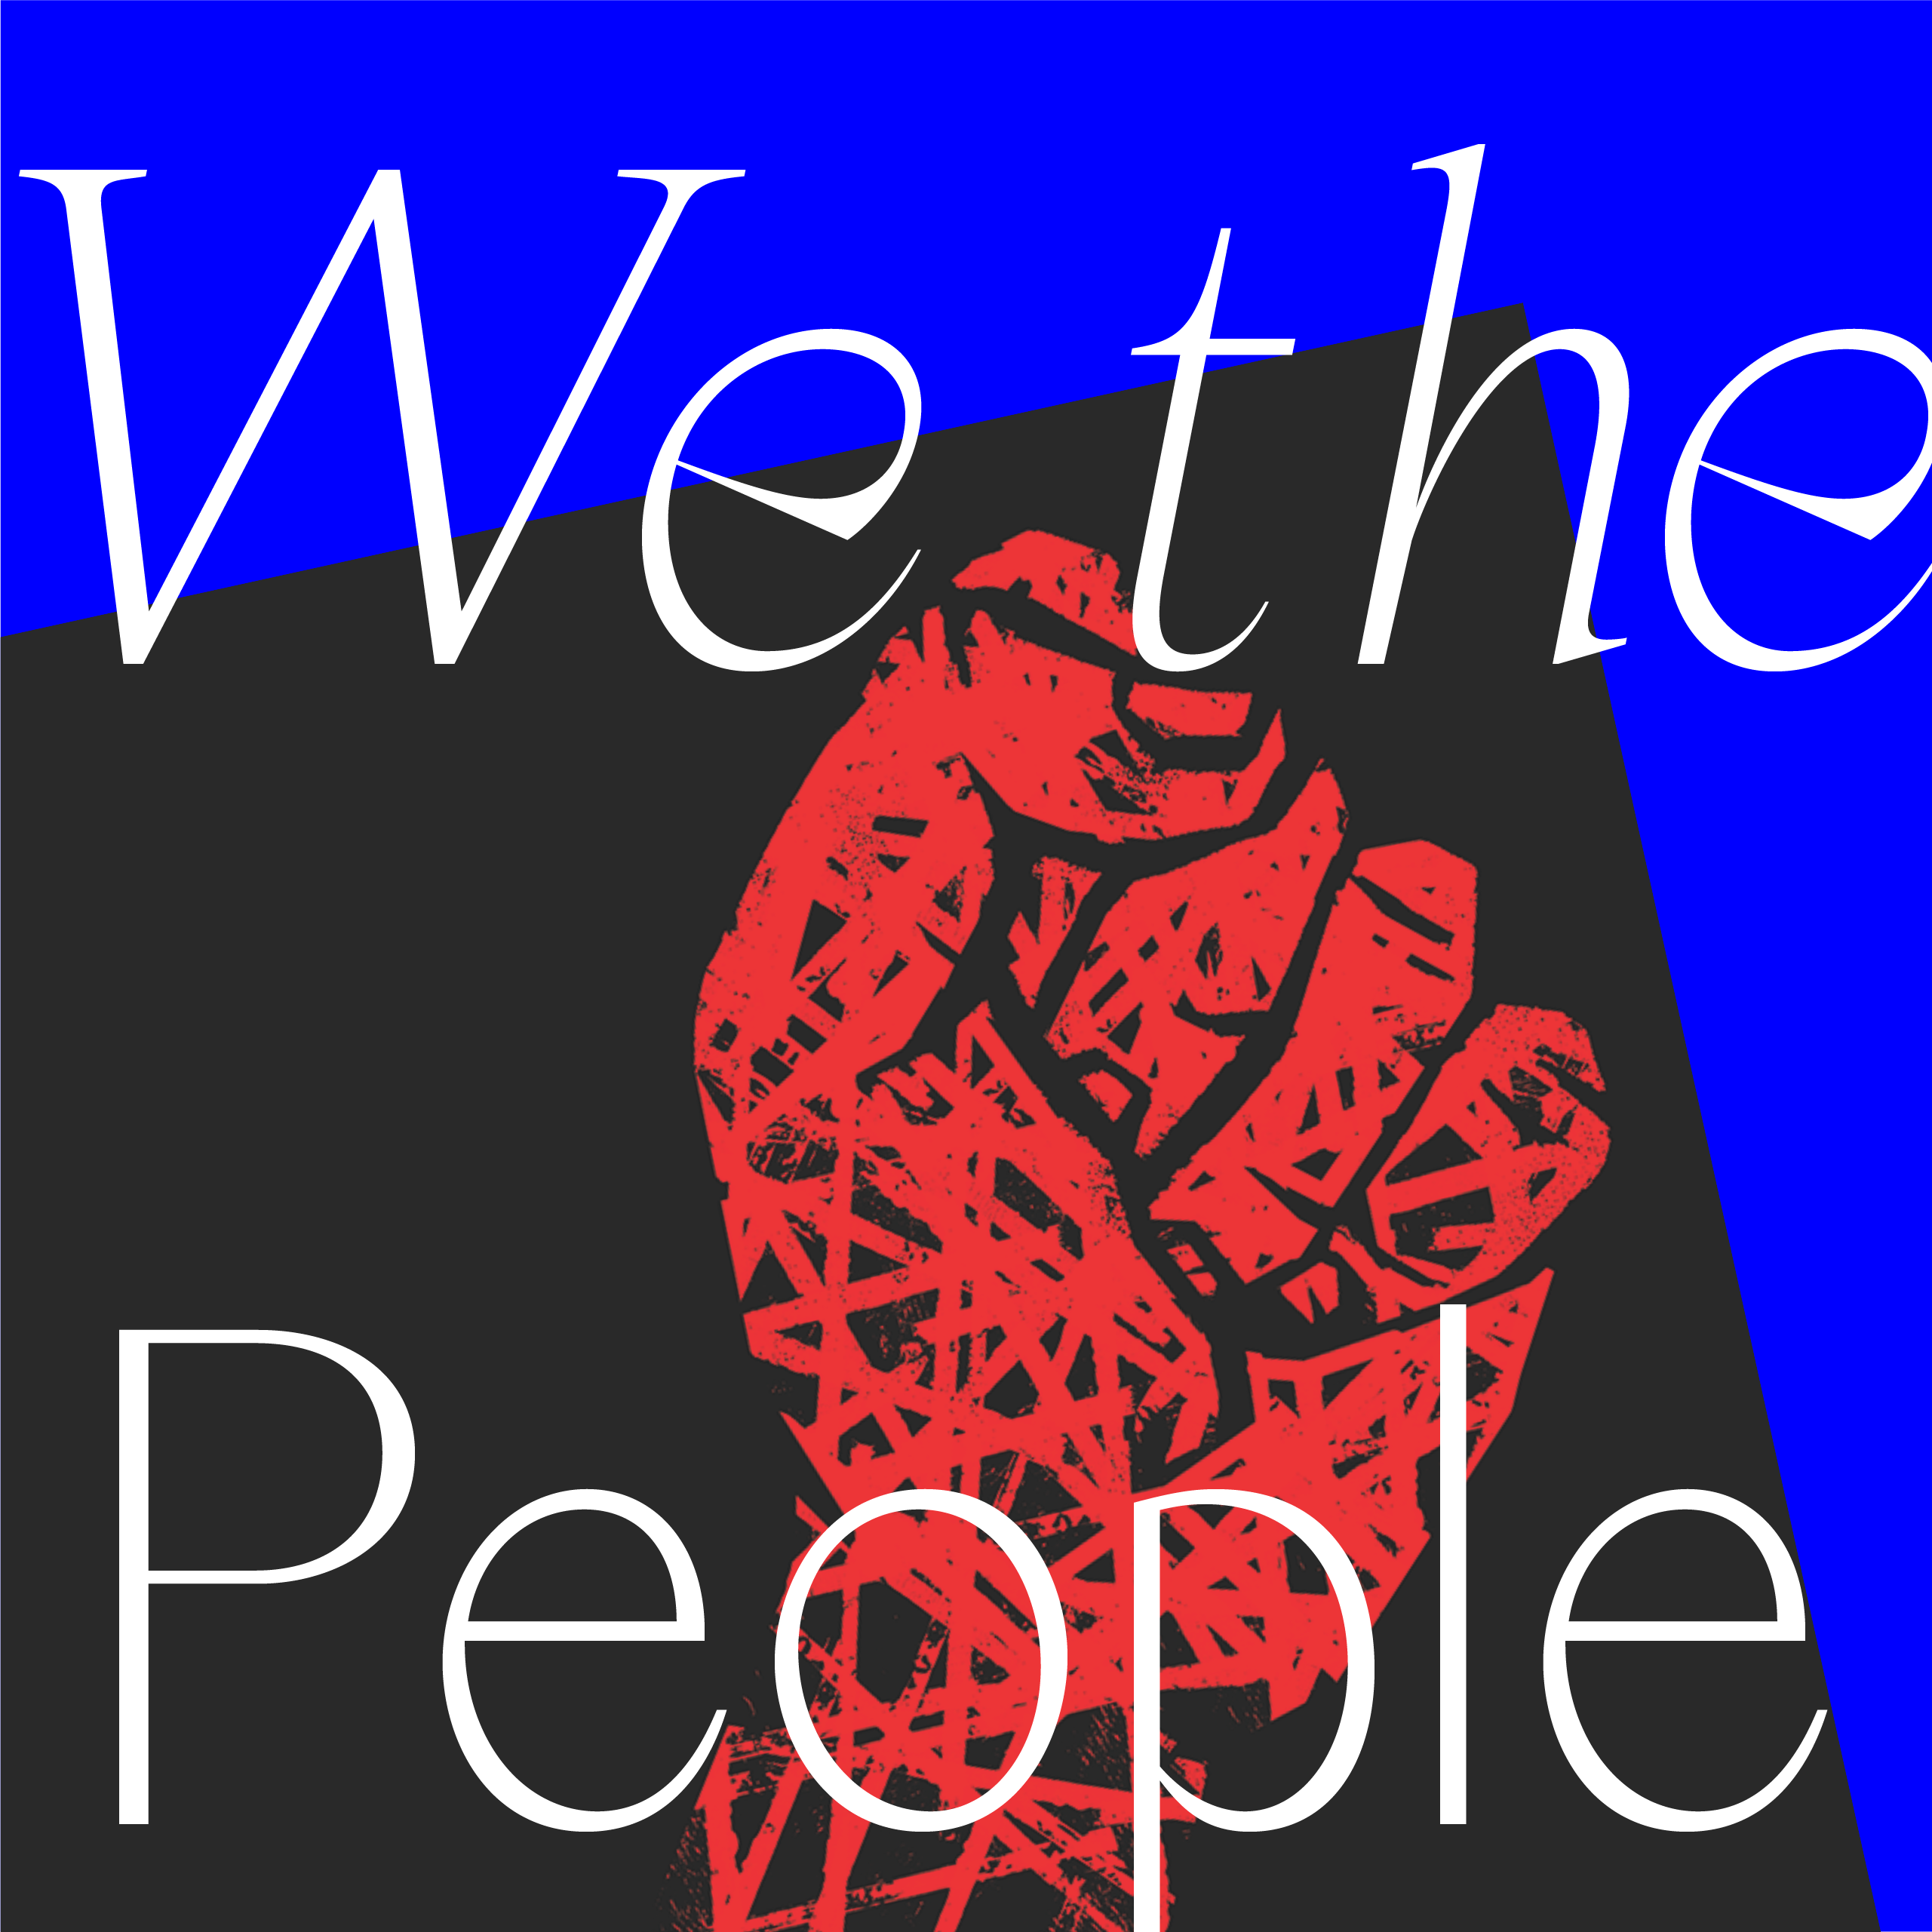 a drawn red fist against a black and blue background with the words we the people over it